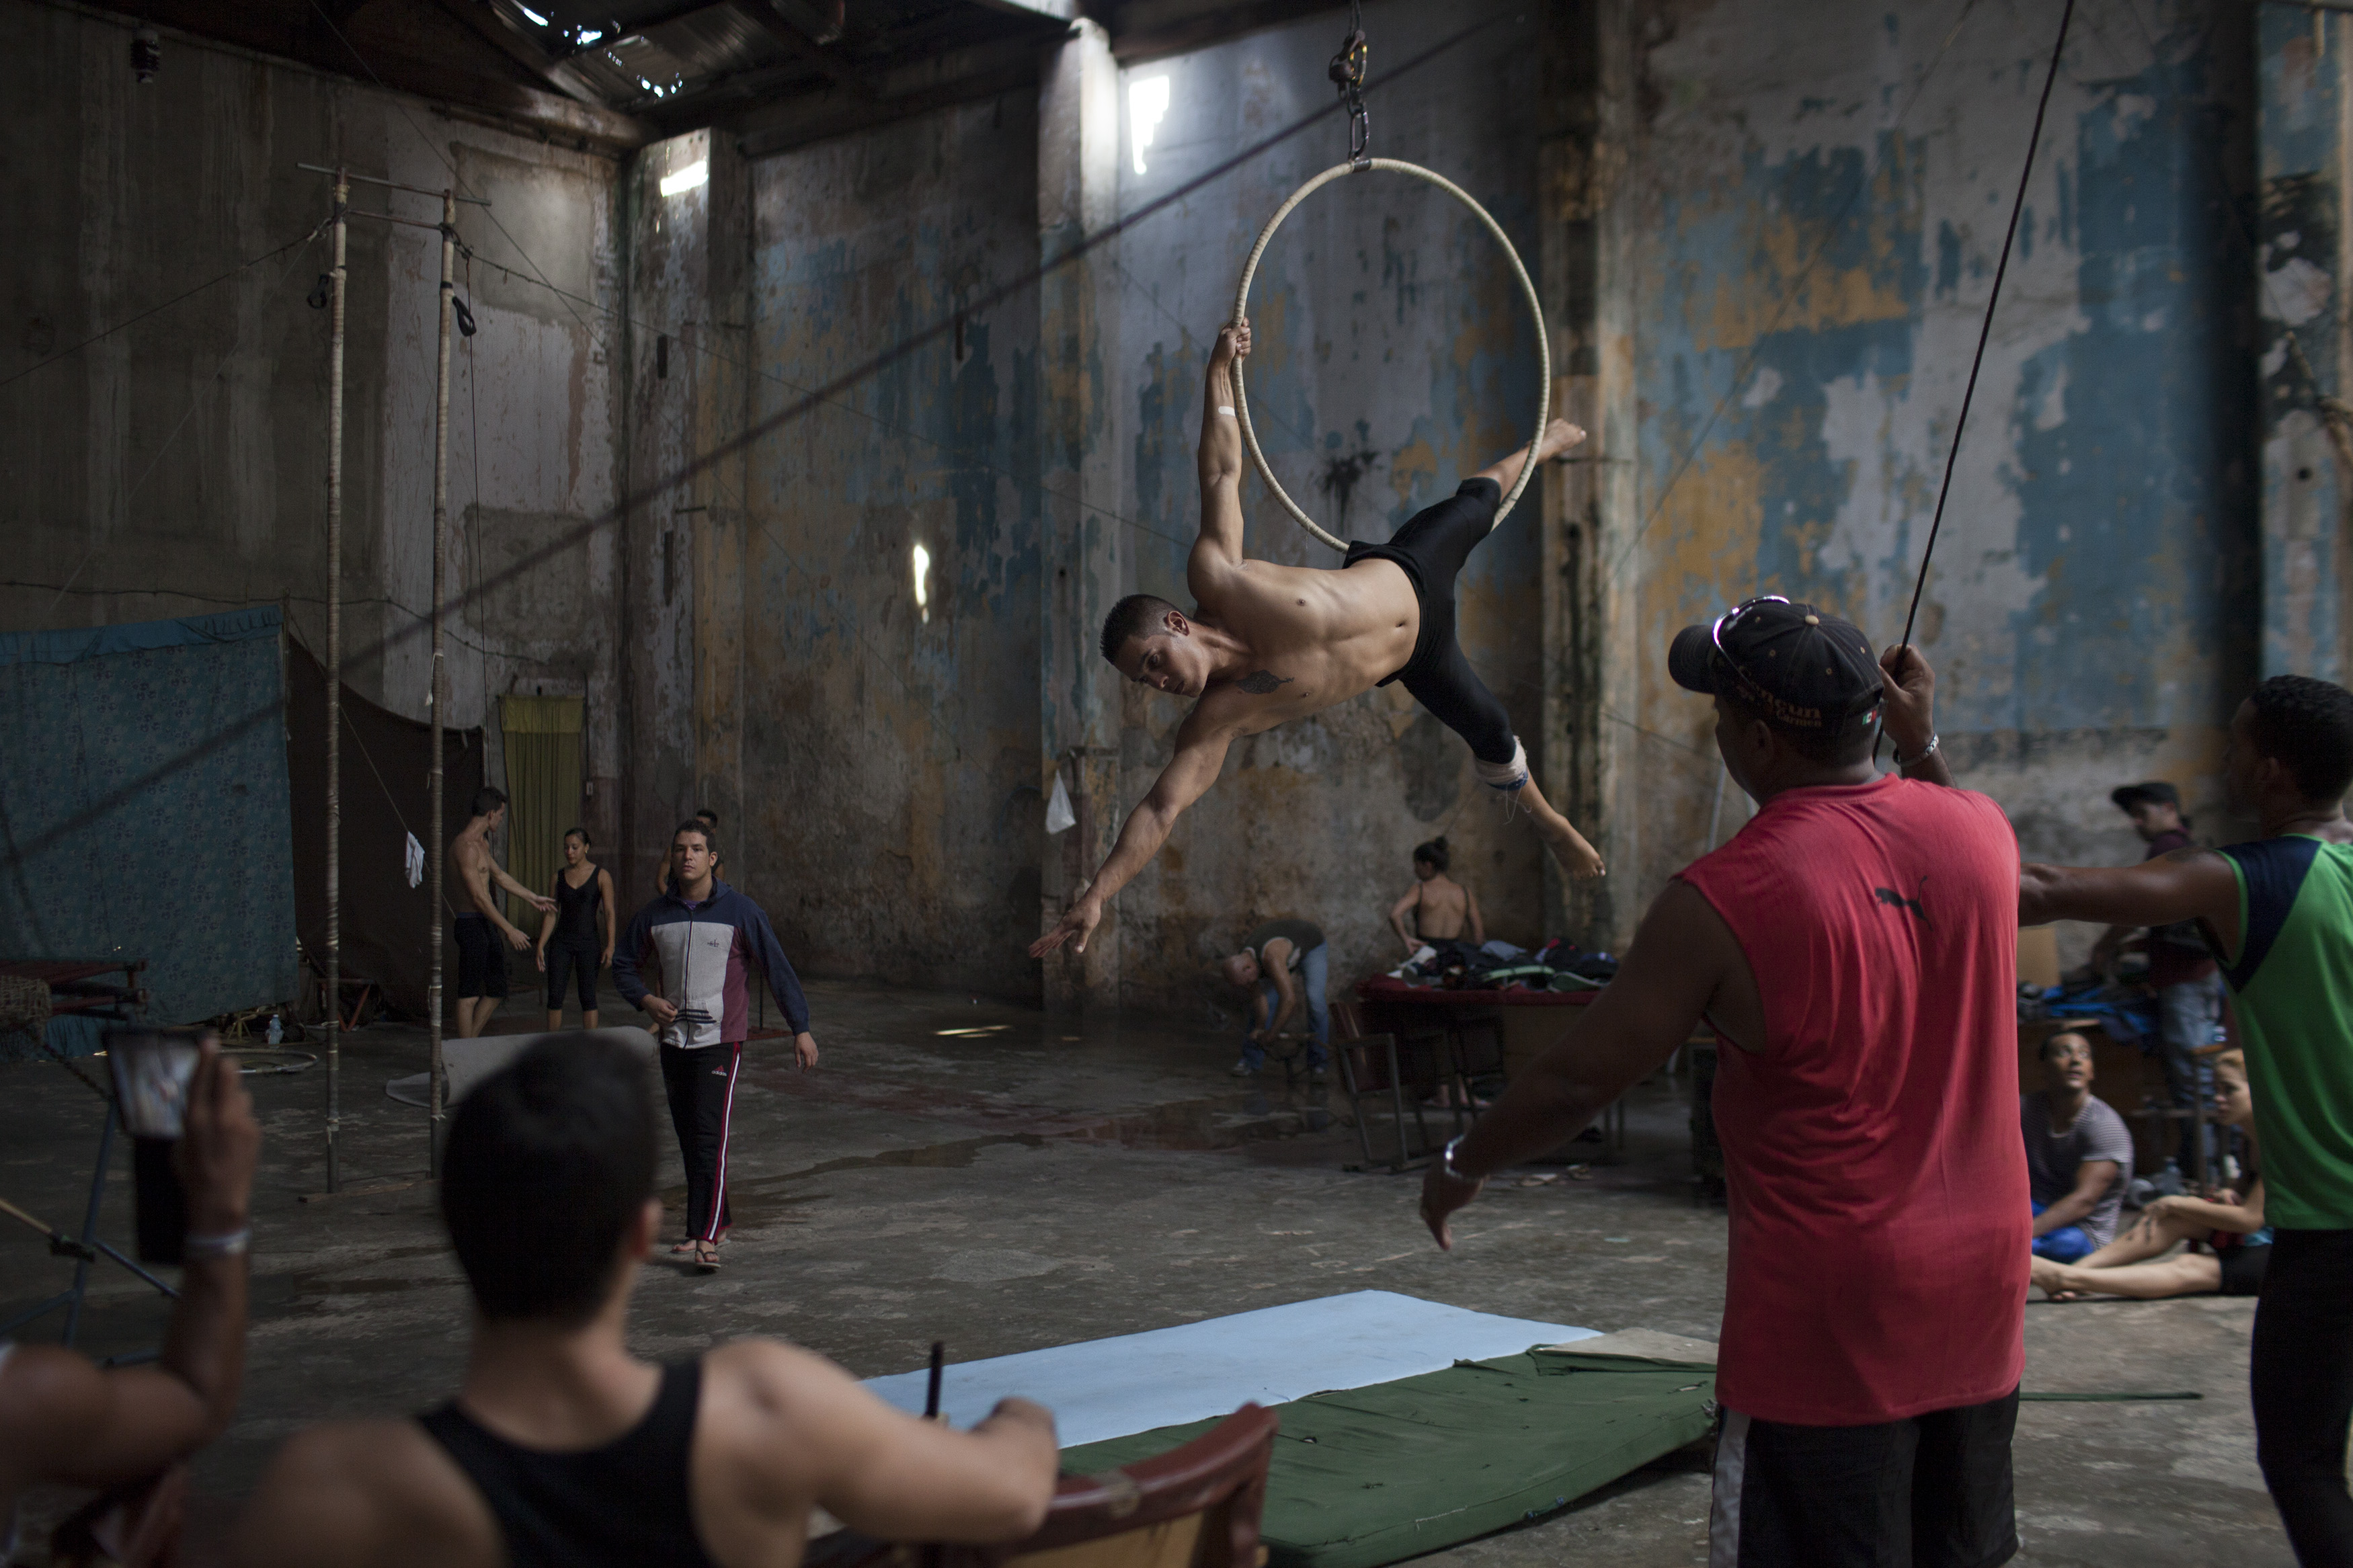 Cuban School of Circus - series